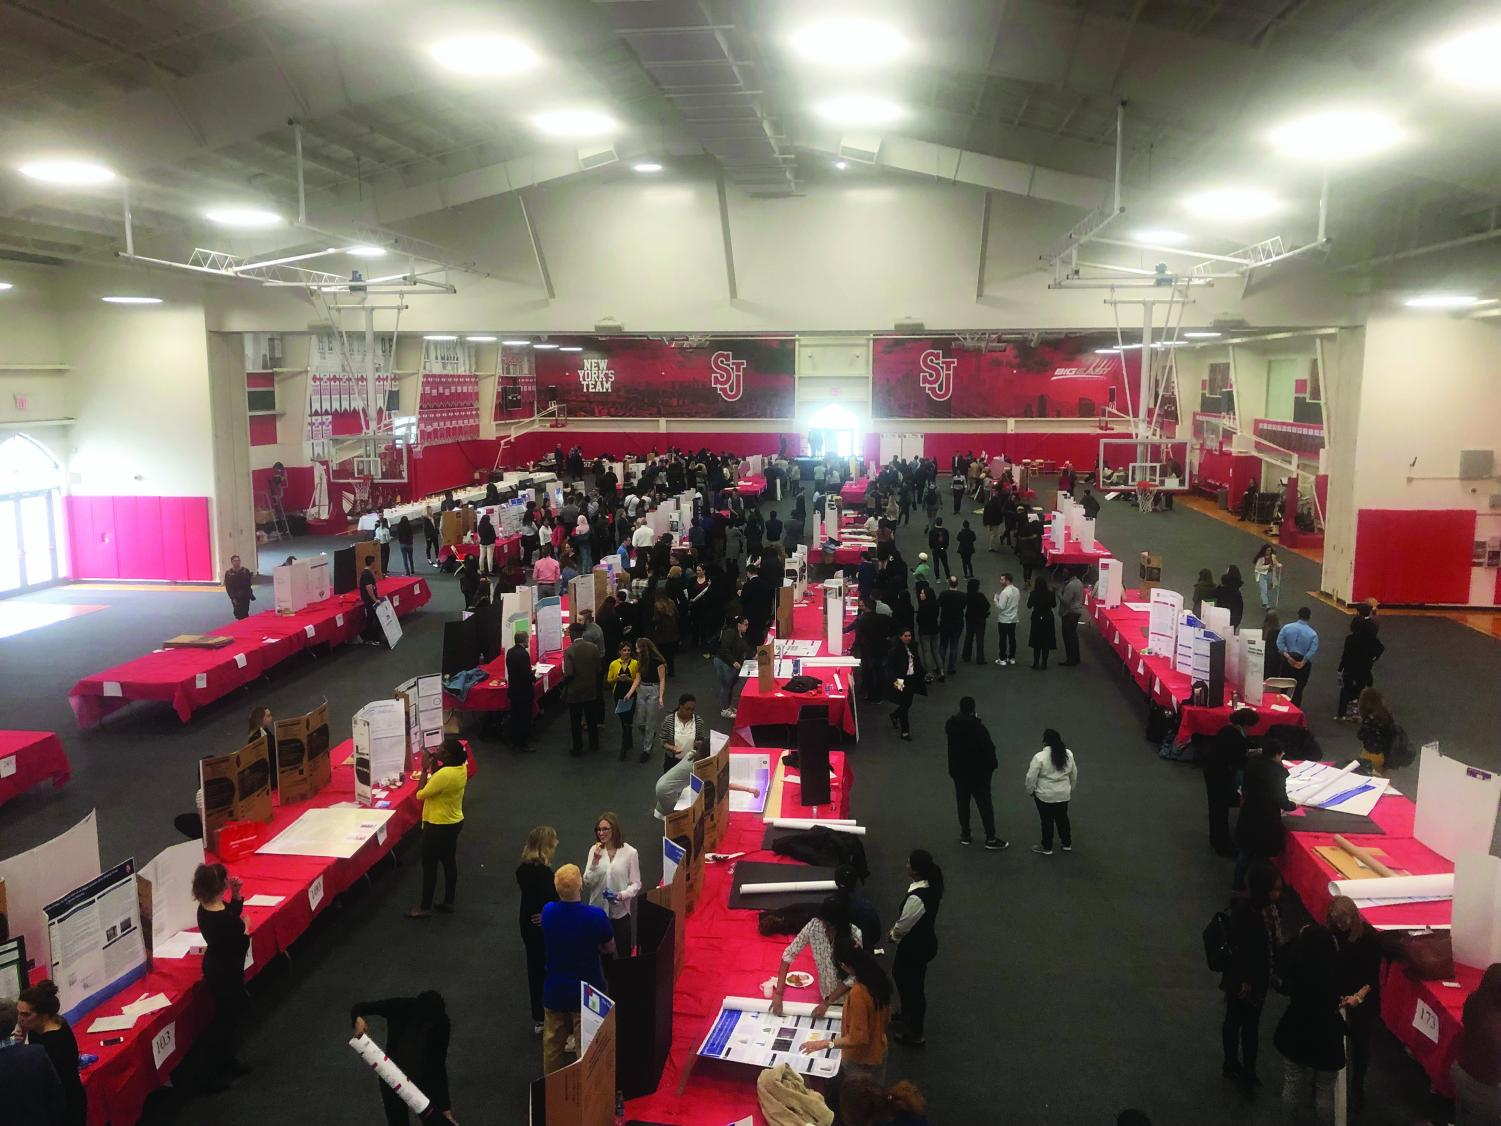 Students and faculty presented their research projects during Research Month's Poster Session in Taffner Field House on April 11.